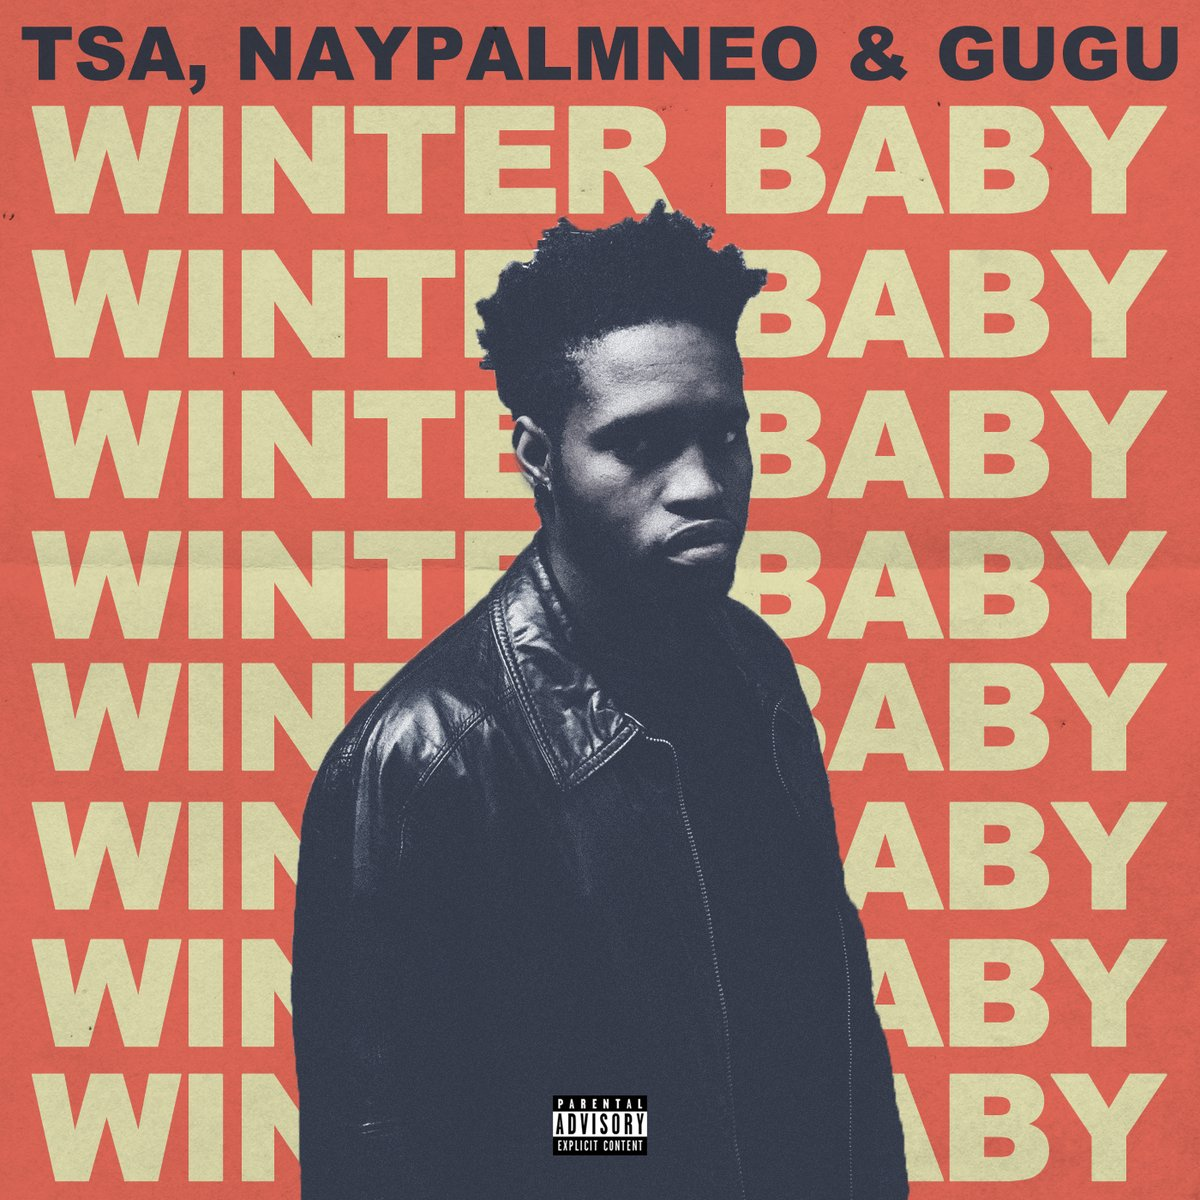 Listen To TSA's 'Winter Baby' (Extended Version) Ft. NayPalmNeo & GUGU DpI33 NXUAAnitm